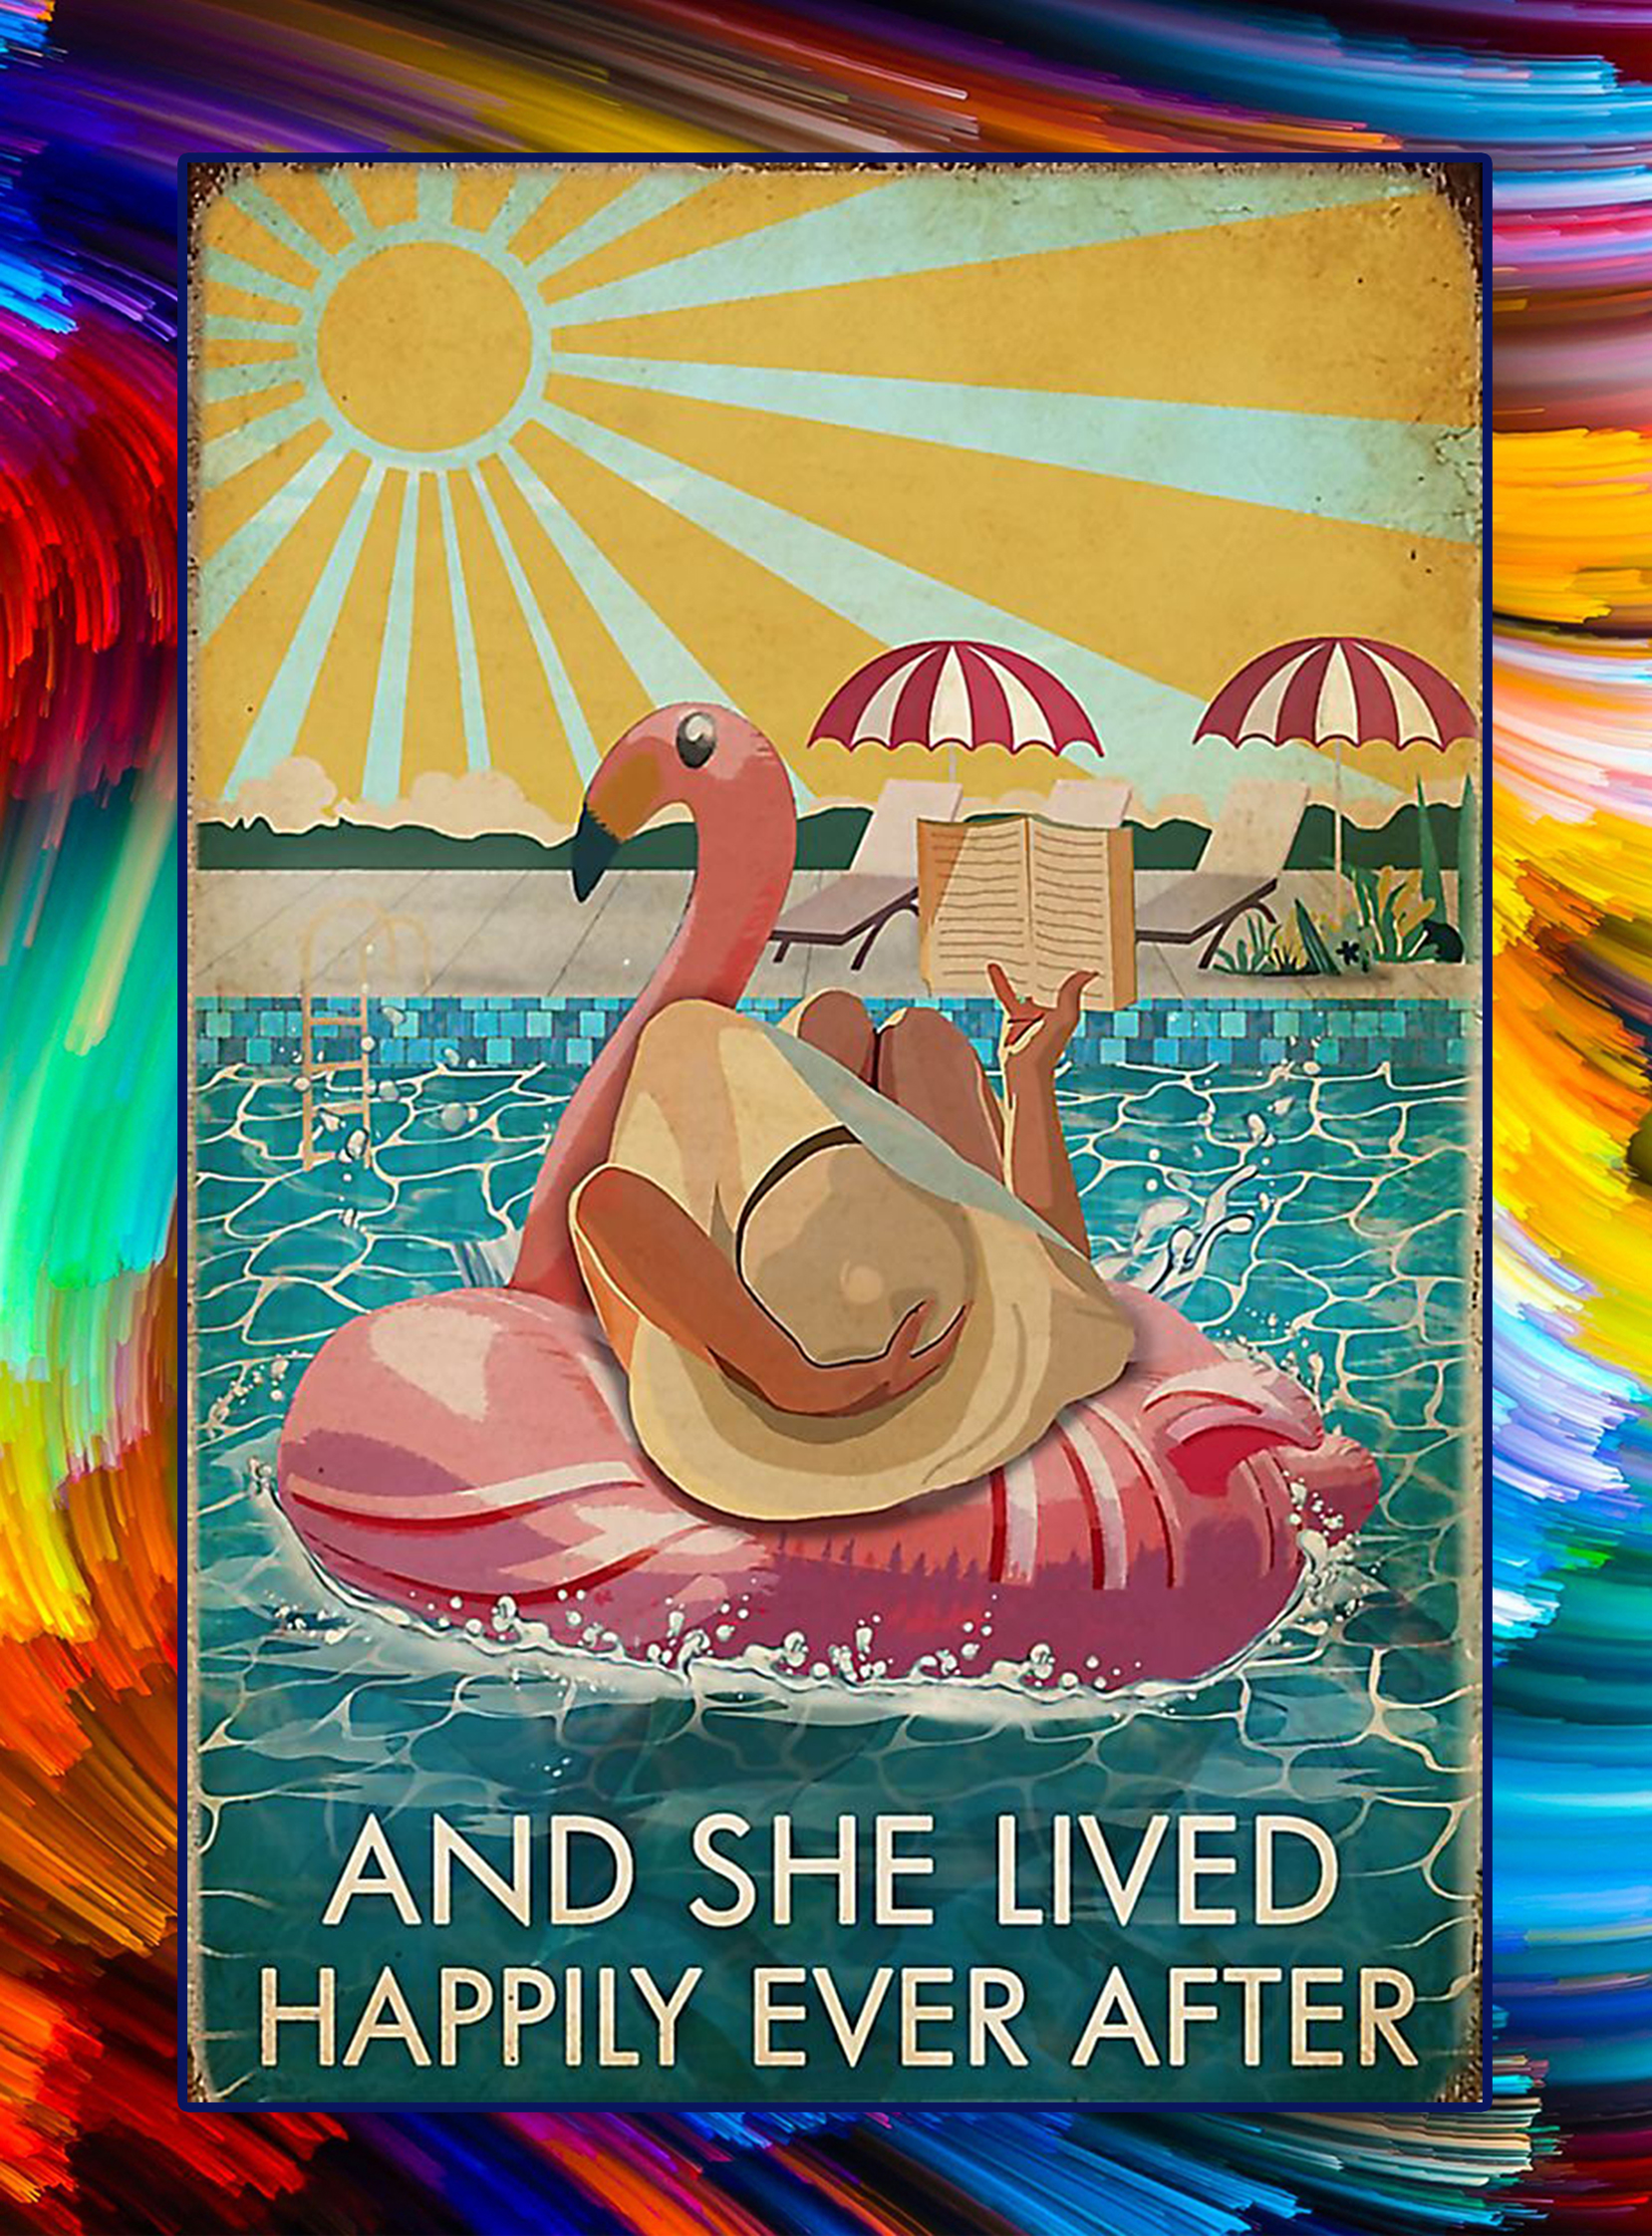 Flamingo book pool and she lived happily ever after poster - A2